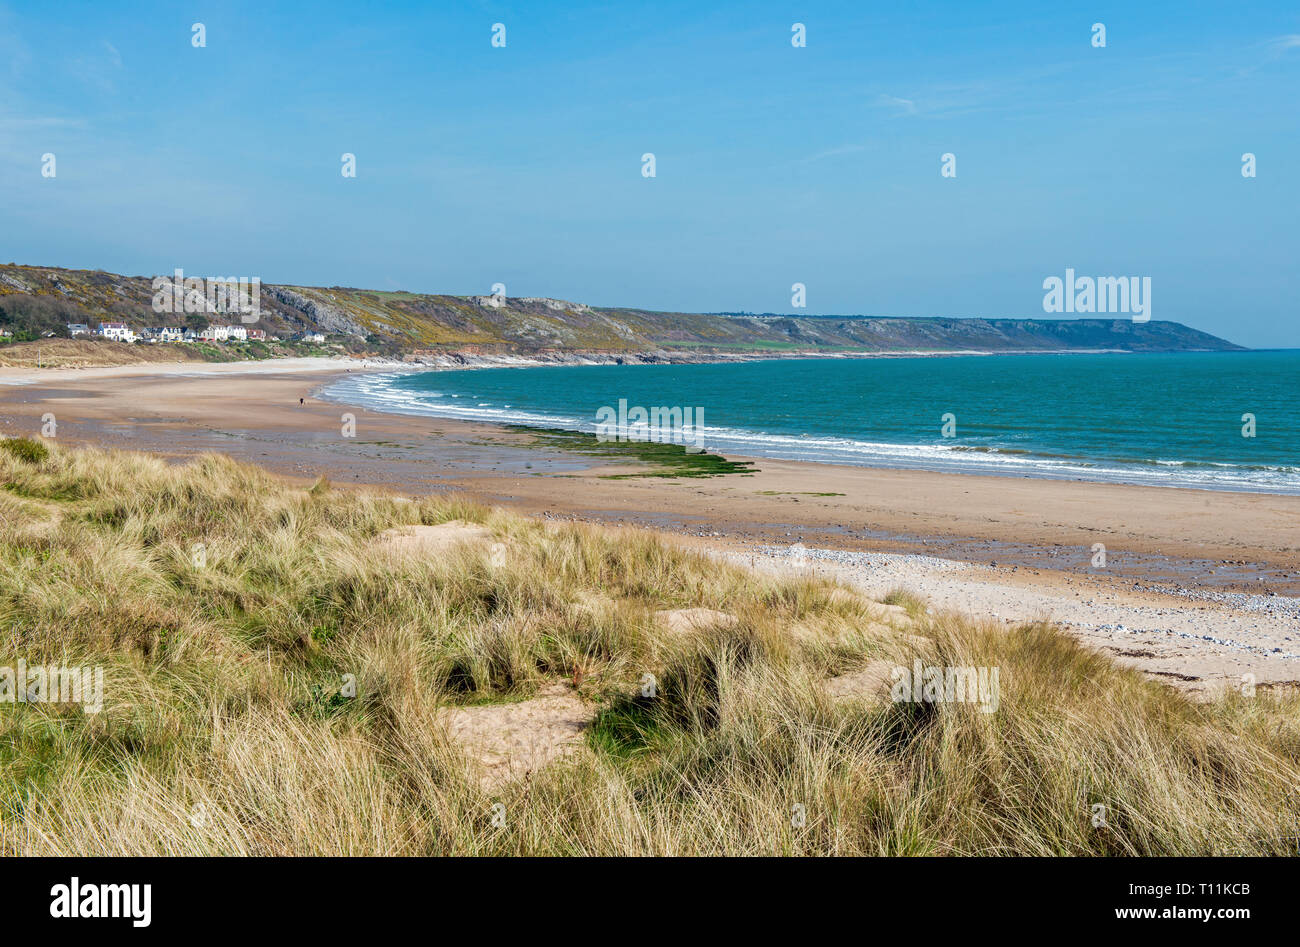 Port Eynon and Horton Beaches on the Gower coast South Wales UK. All the Gower peninsula is an Area of Outstanding Natural Beauty, the first in the UK - Stock Image